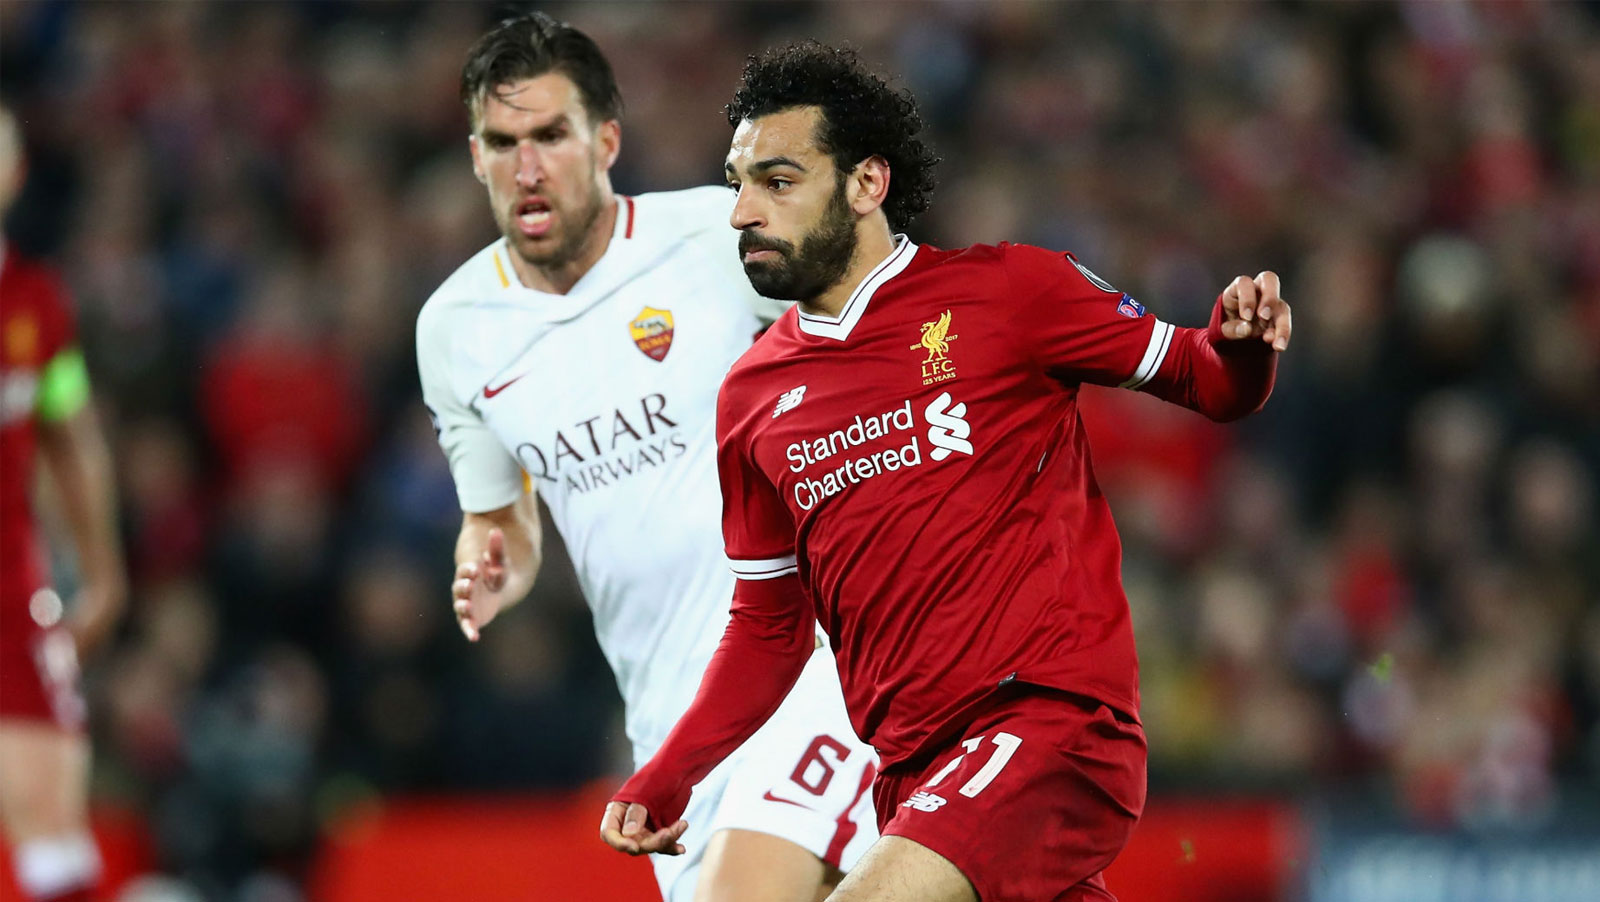 Champions League review: Mo Salah destroys Roma in semi final masterclass